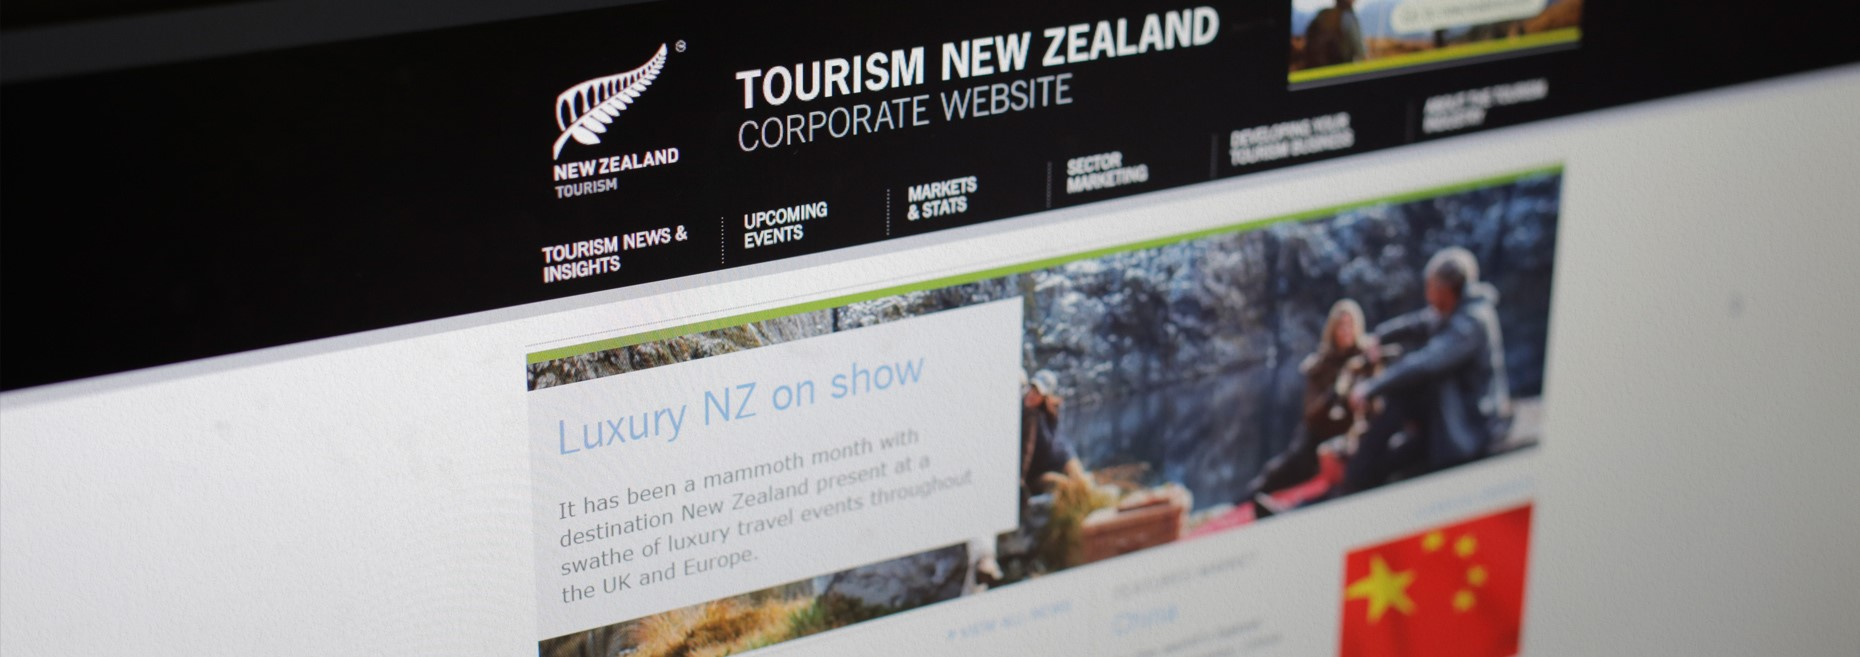 Tourism-New-Zealand-Homepage.jpg